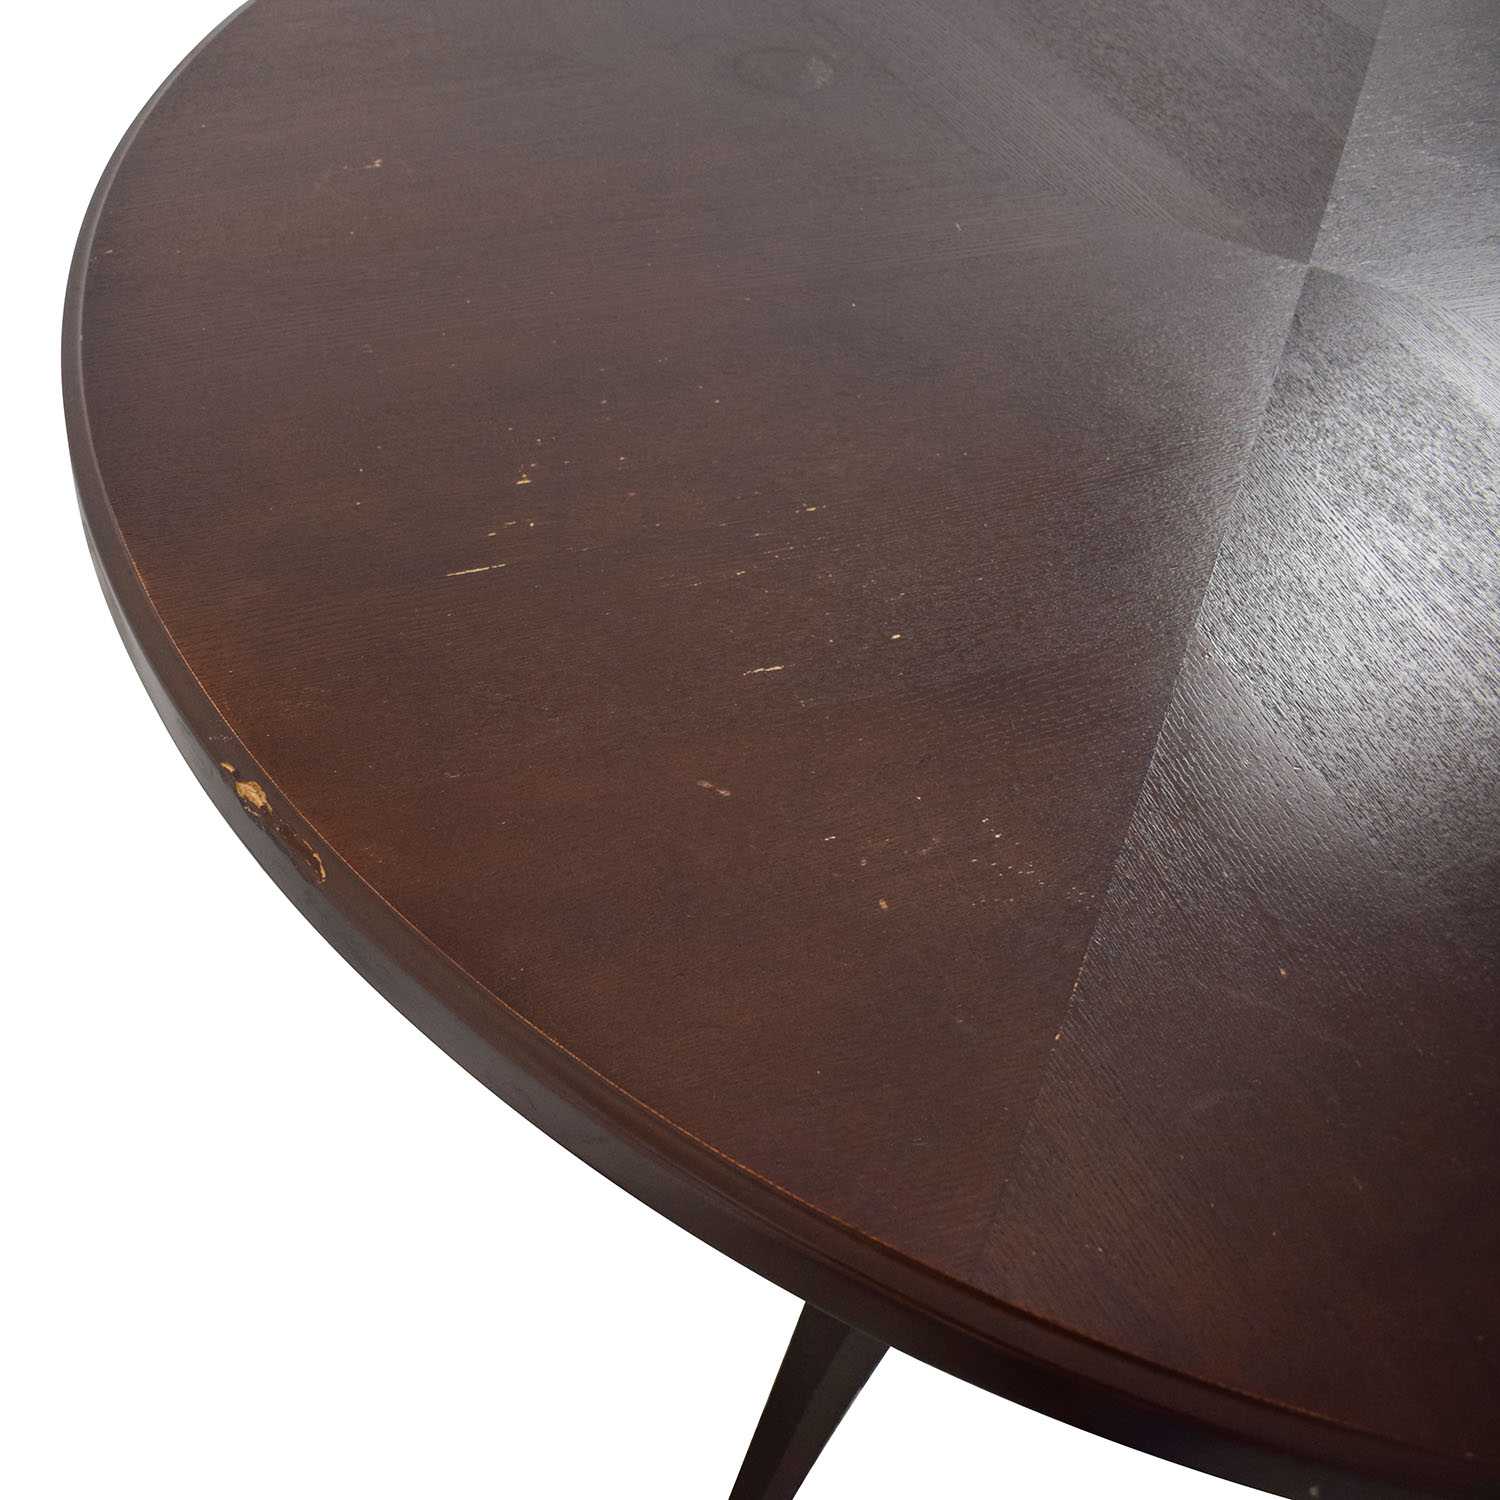 Crate & Barrel Crate & Barrel Round Dining Table second hand